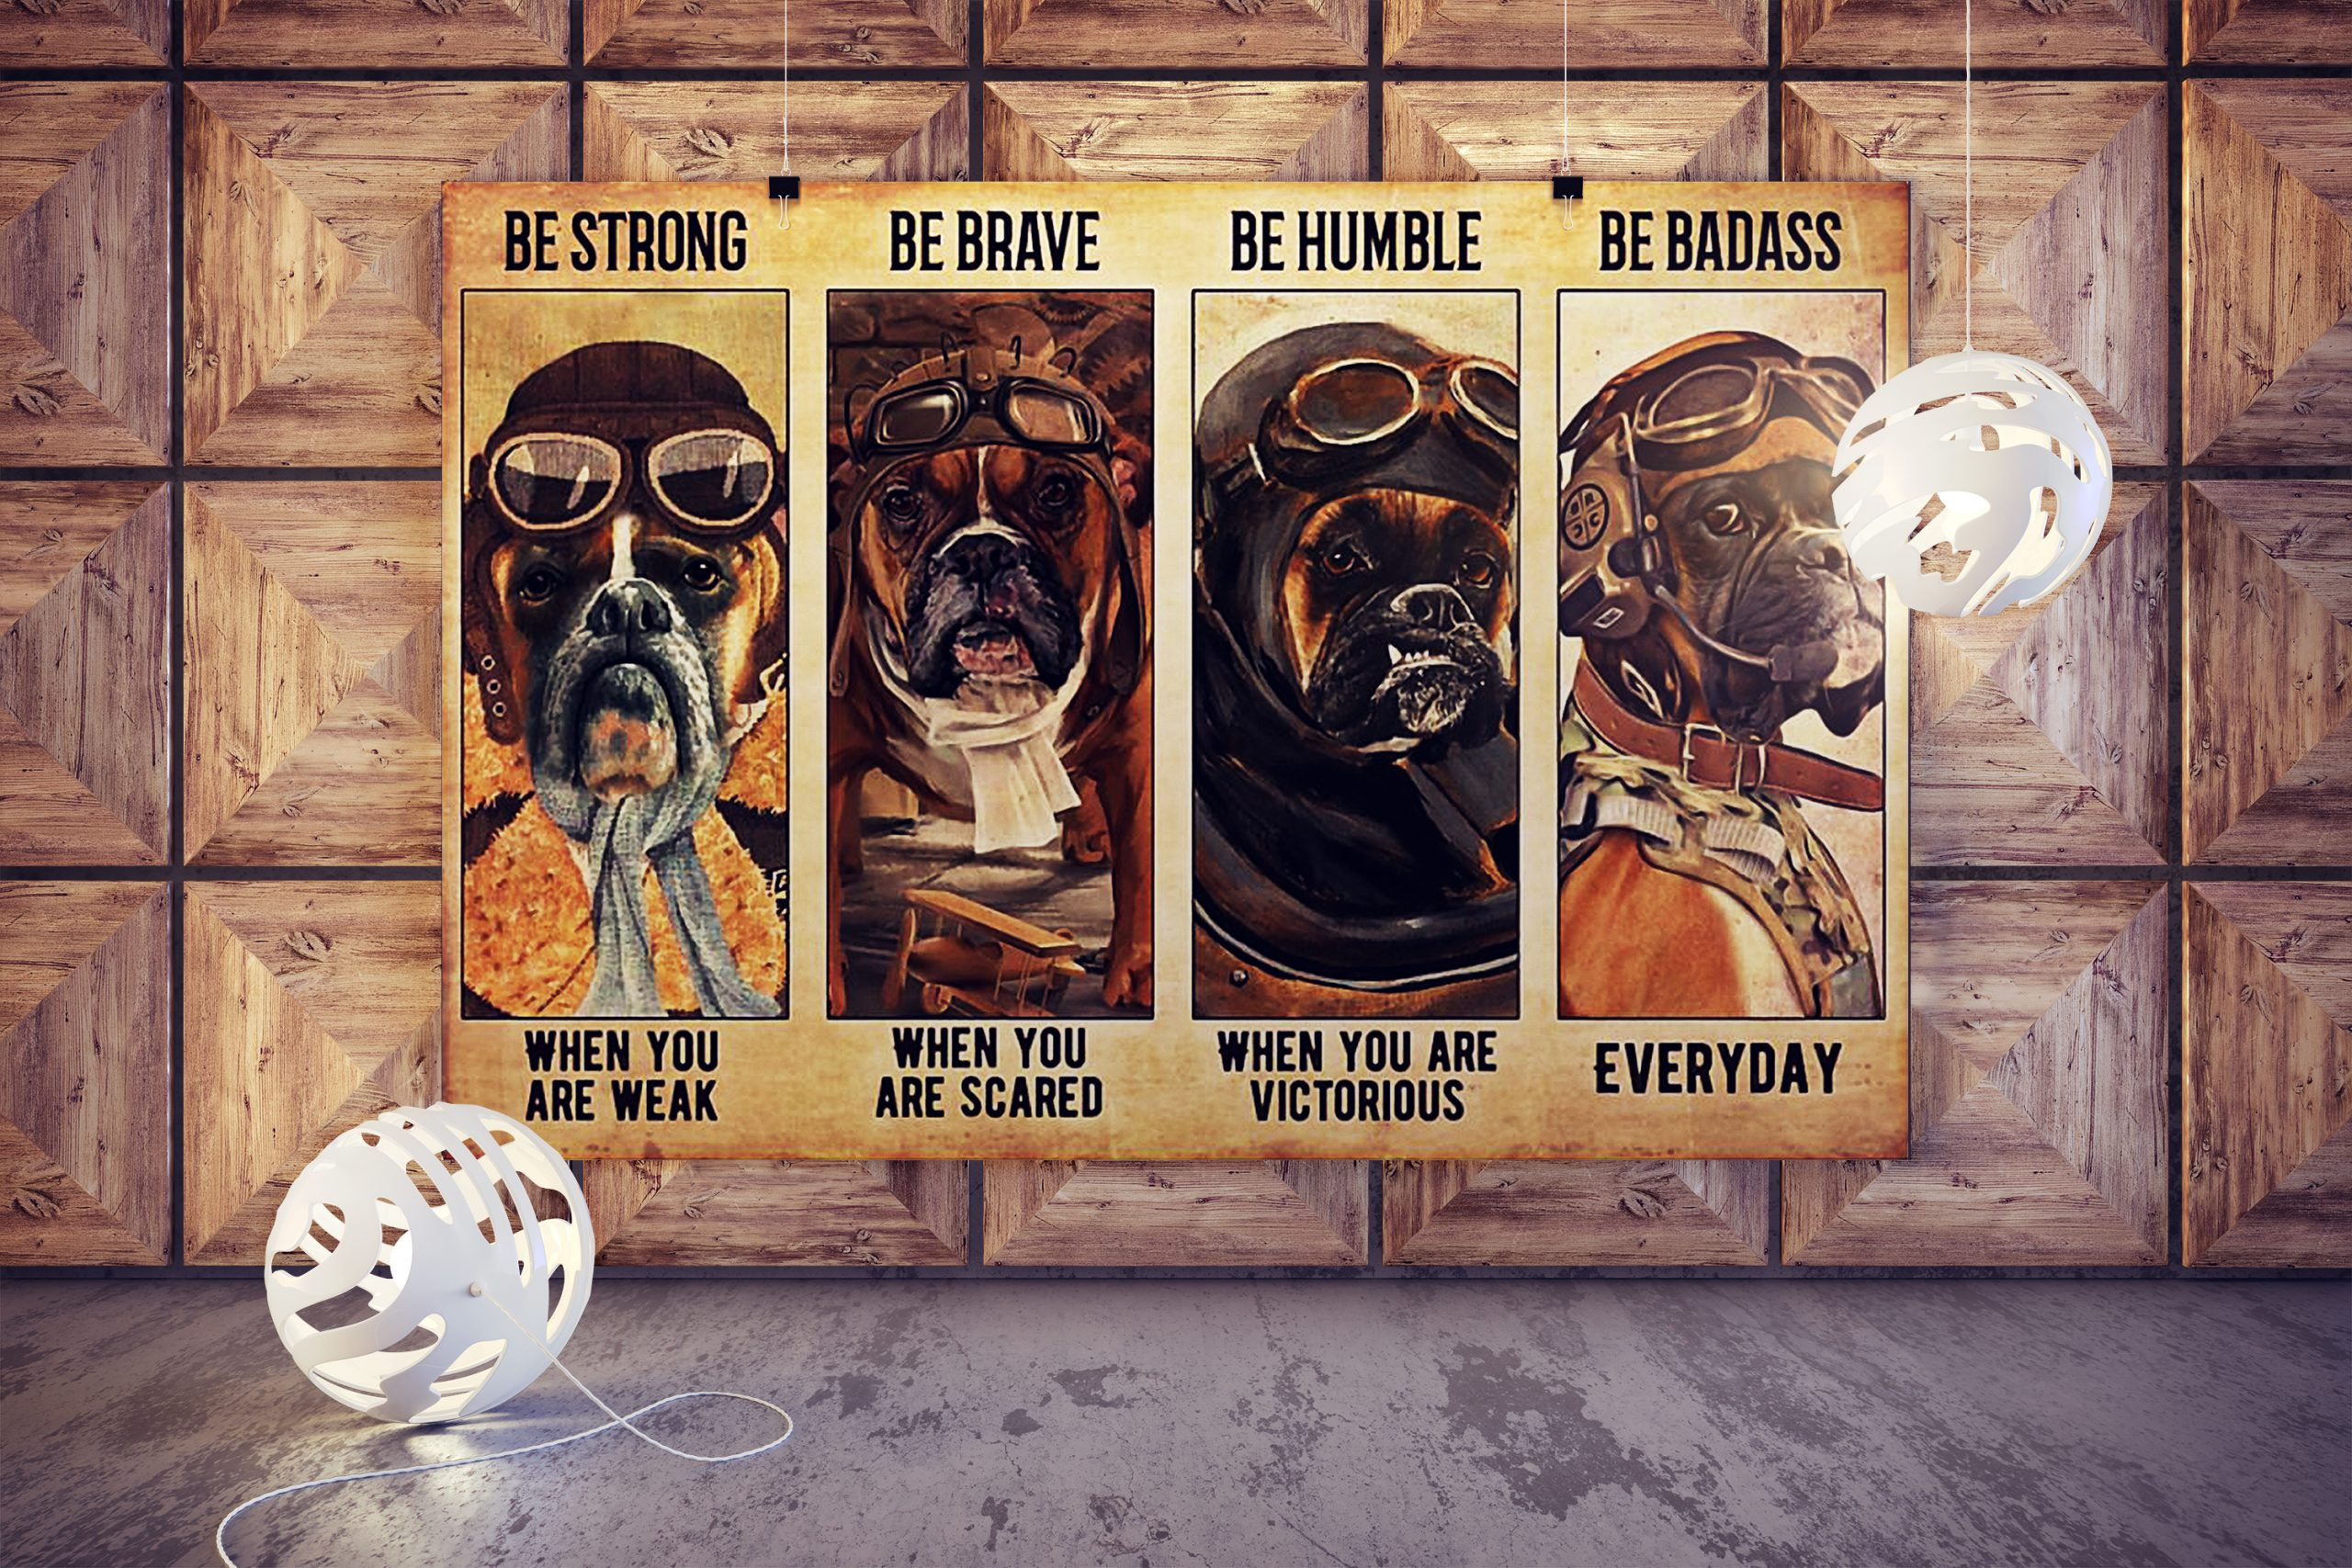 Boxer pilot be strong be brave be humble be badass poster 2